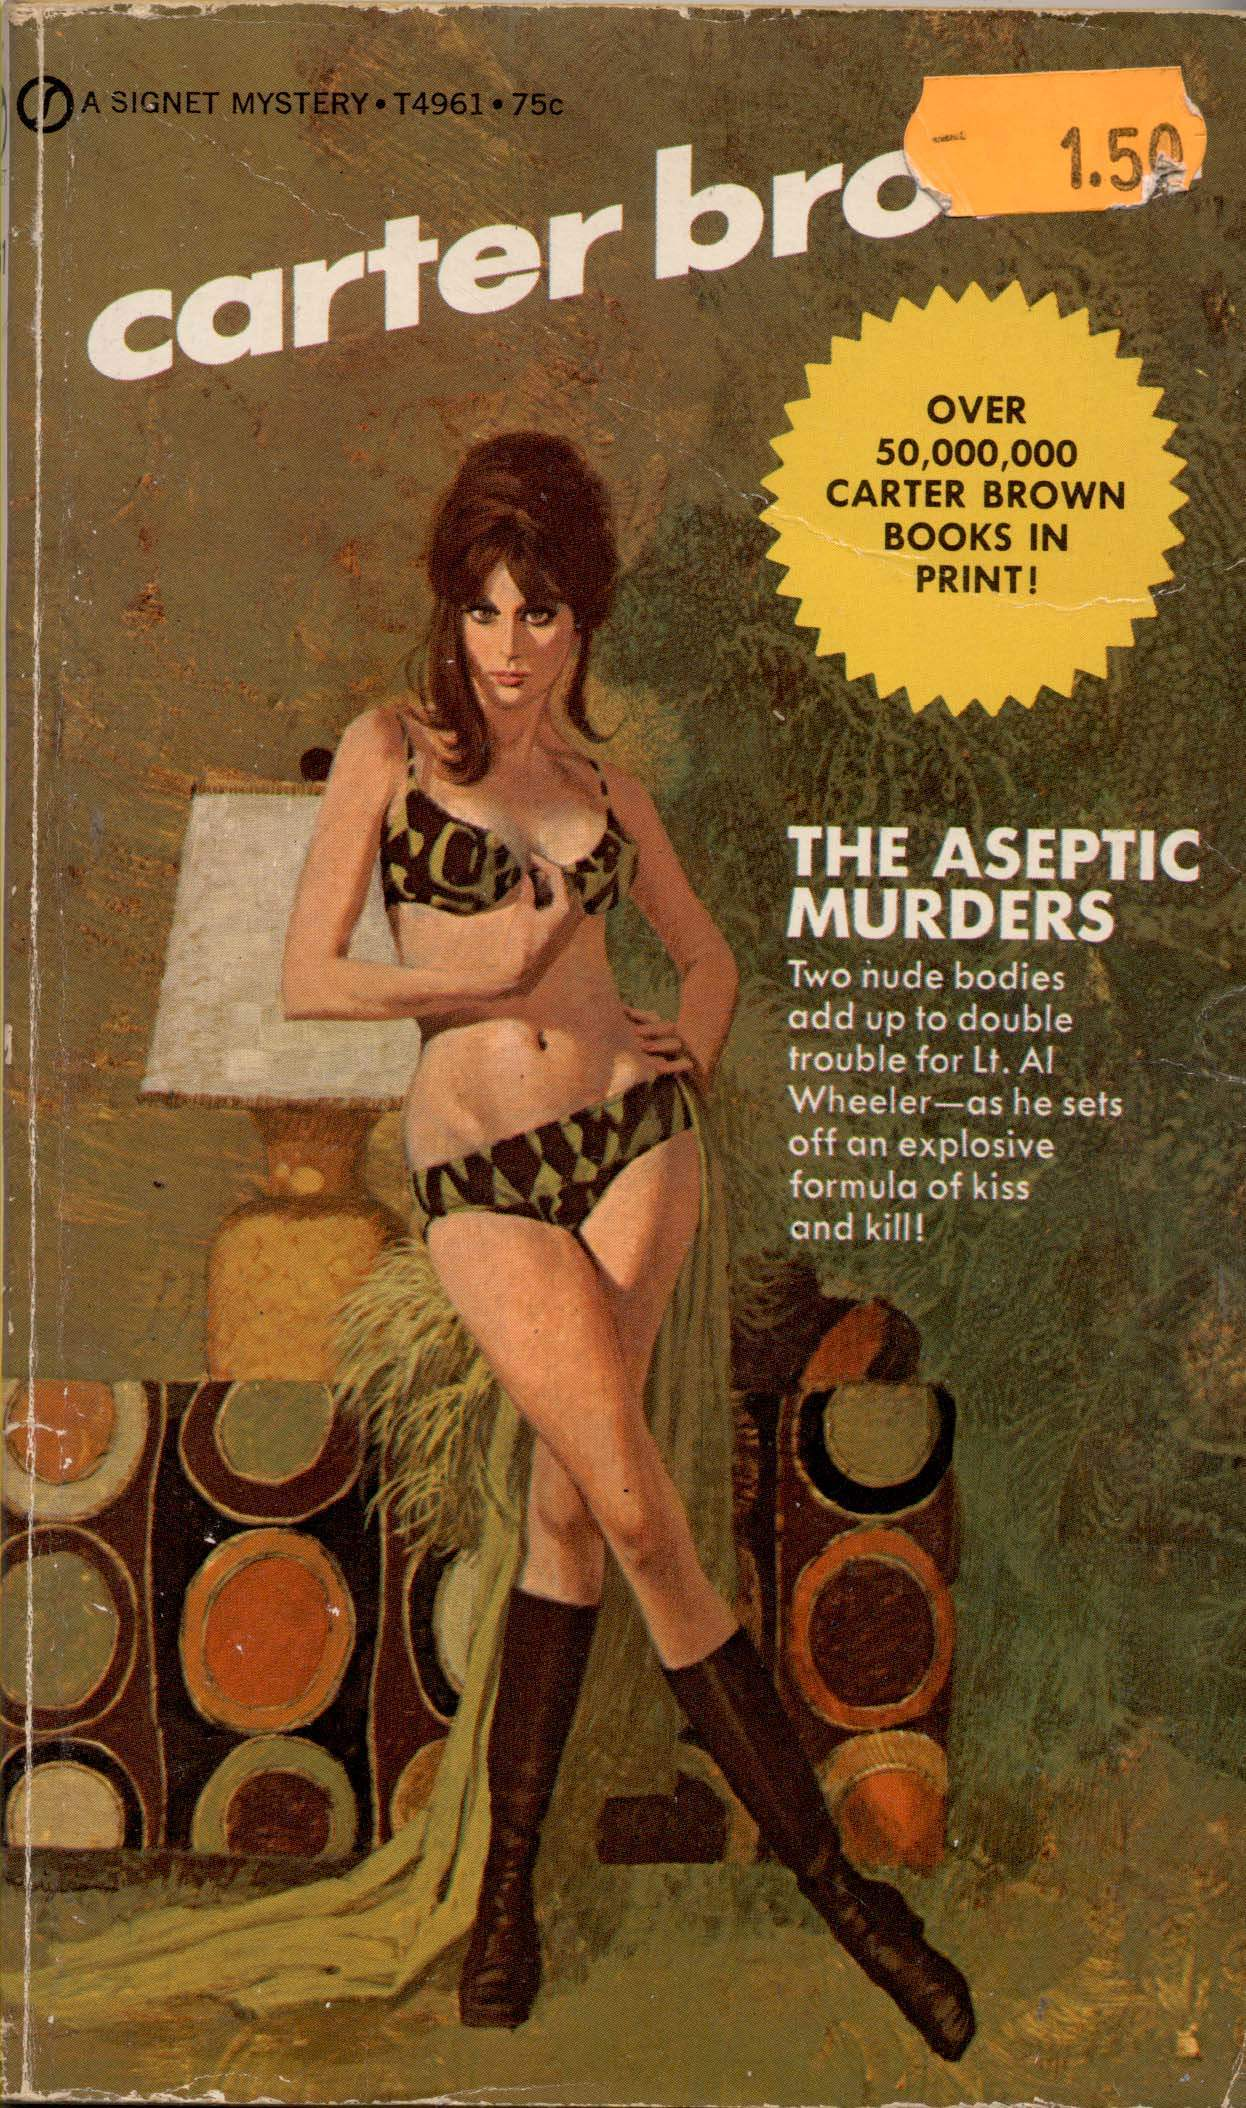 The Aseptic Murders by Carter Brown, 1972.